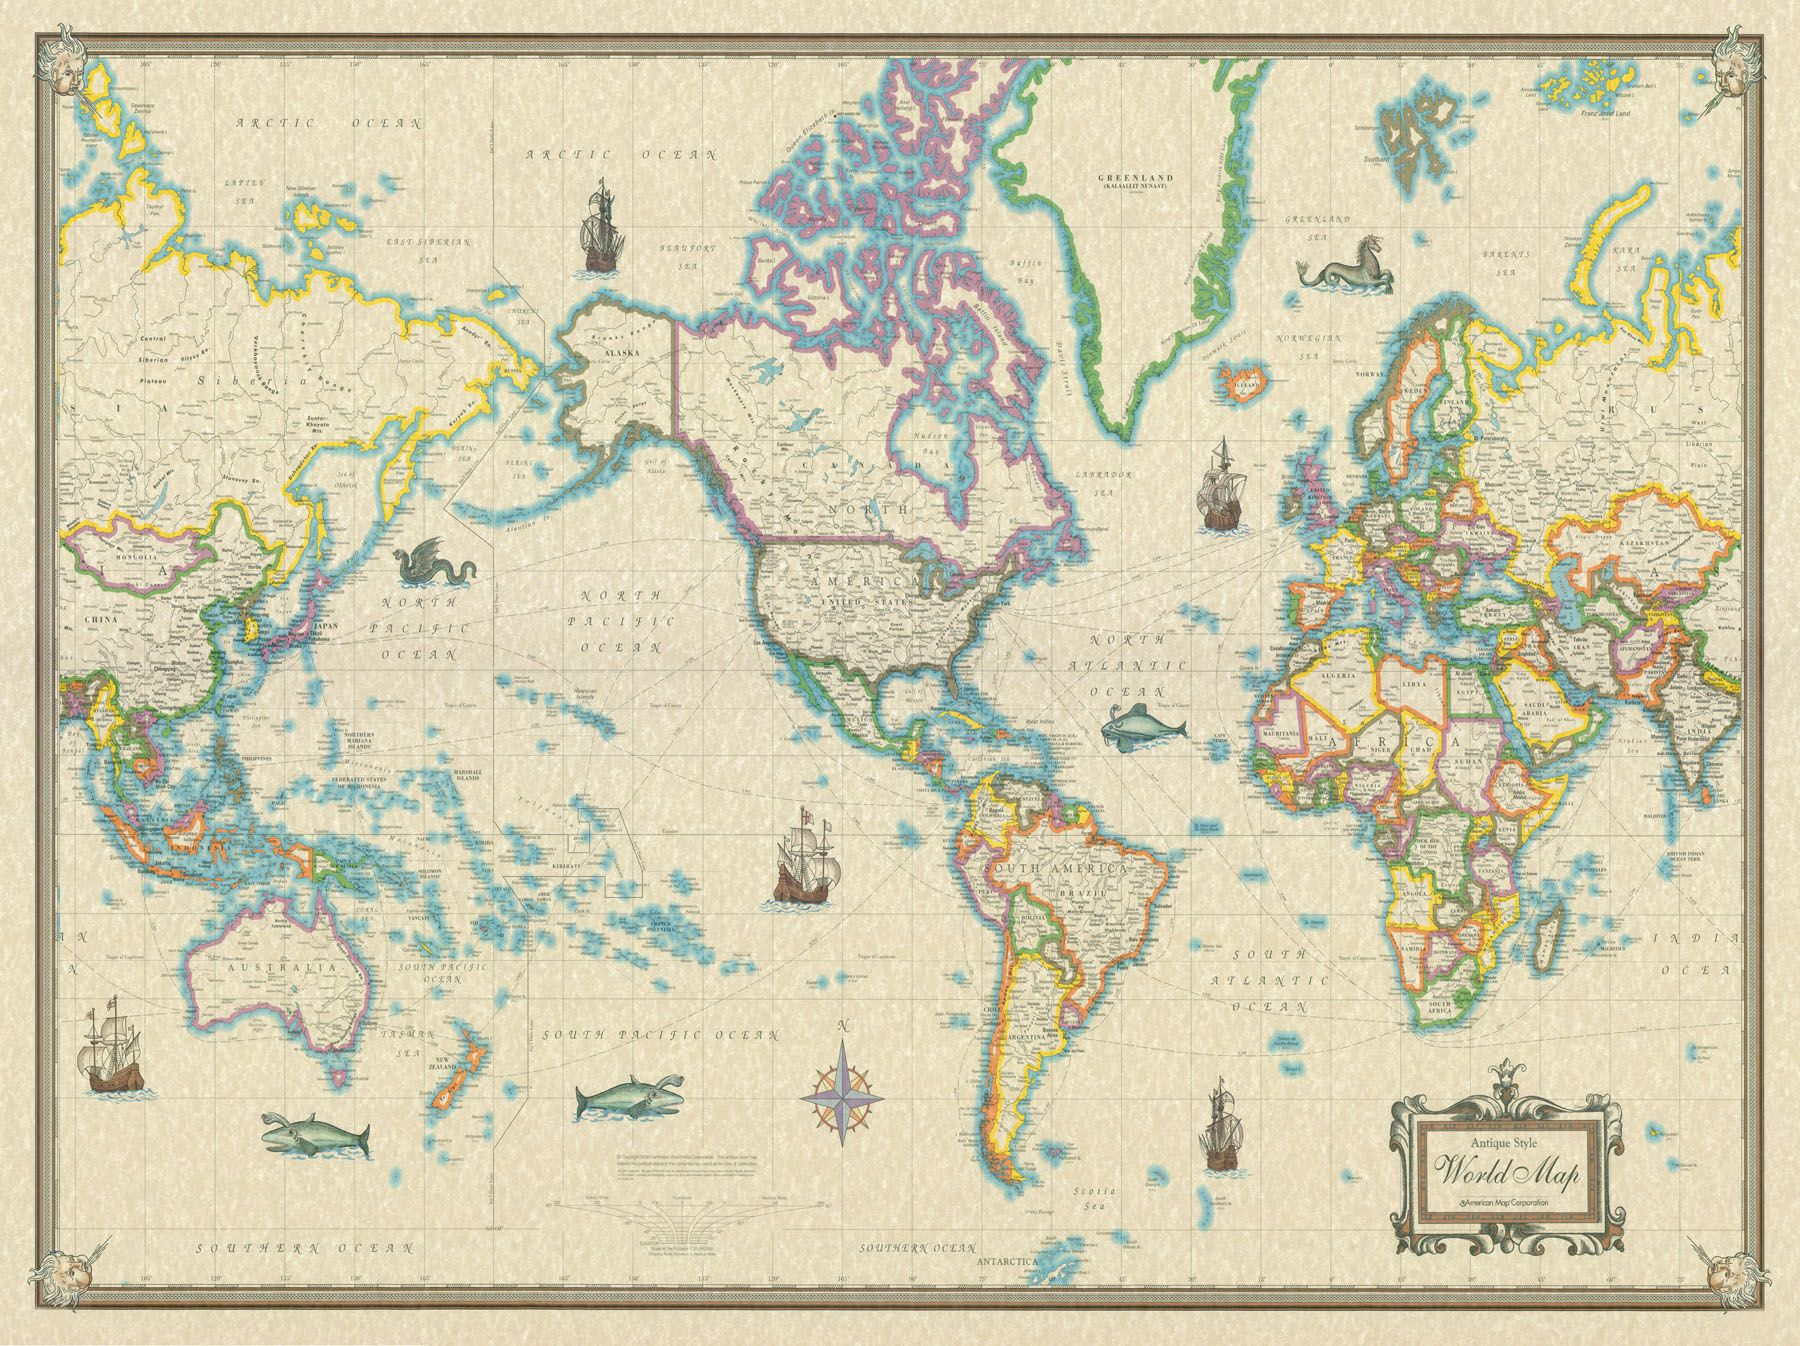 Antique map of the world hi res image world maps pinterest antique style world wall map poster large mural gumiabroncs Image collections